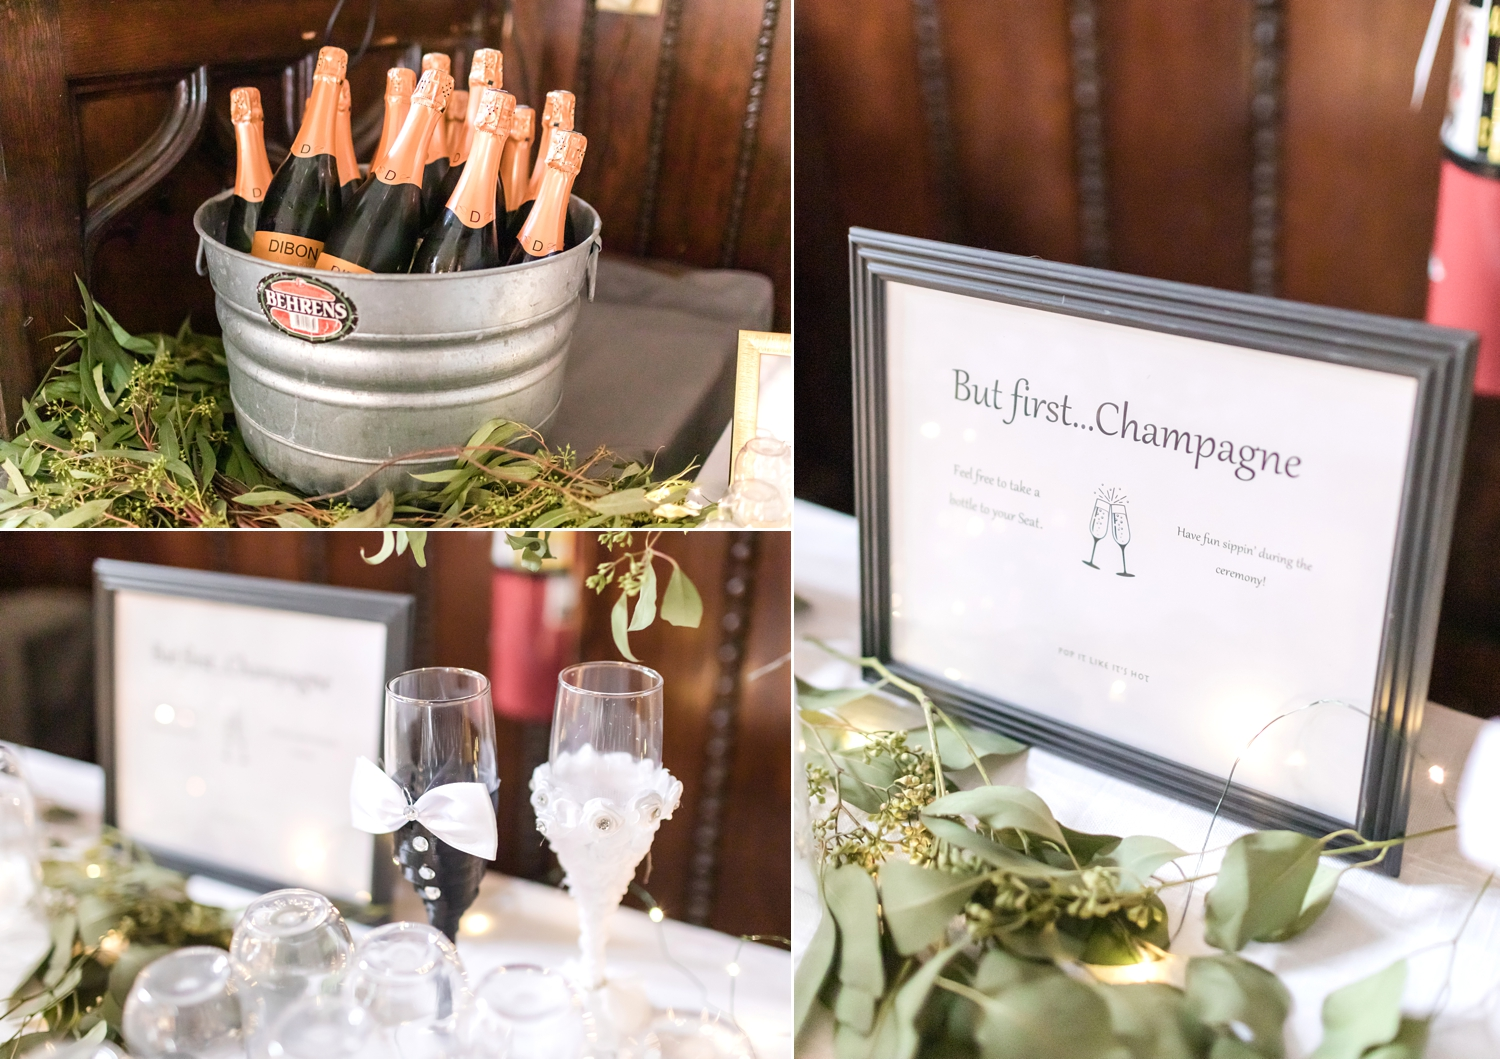 A delicious champagne bar before the ceremony!